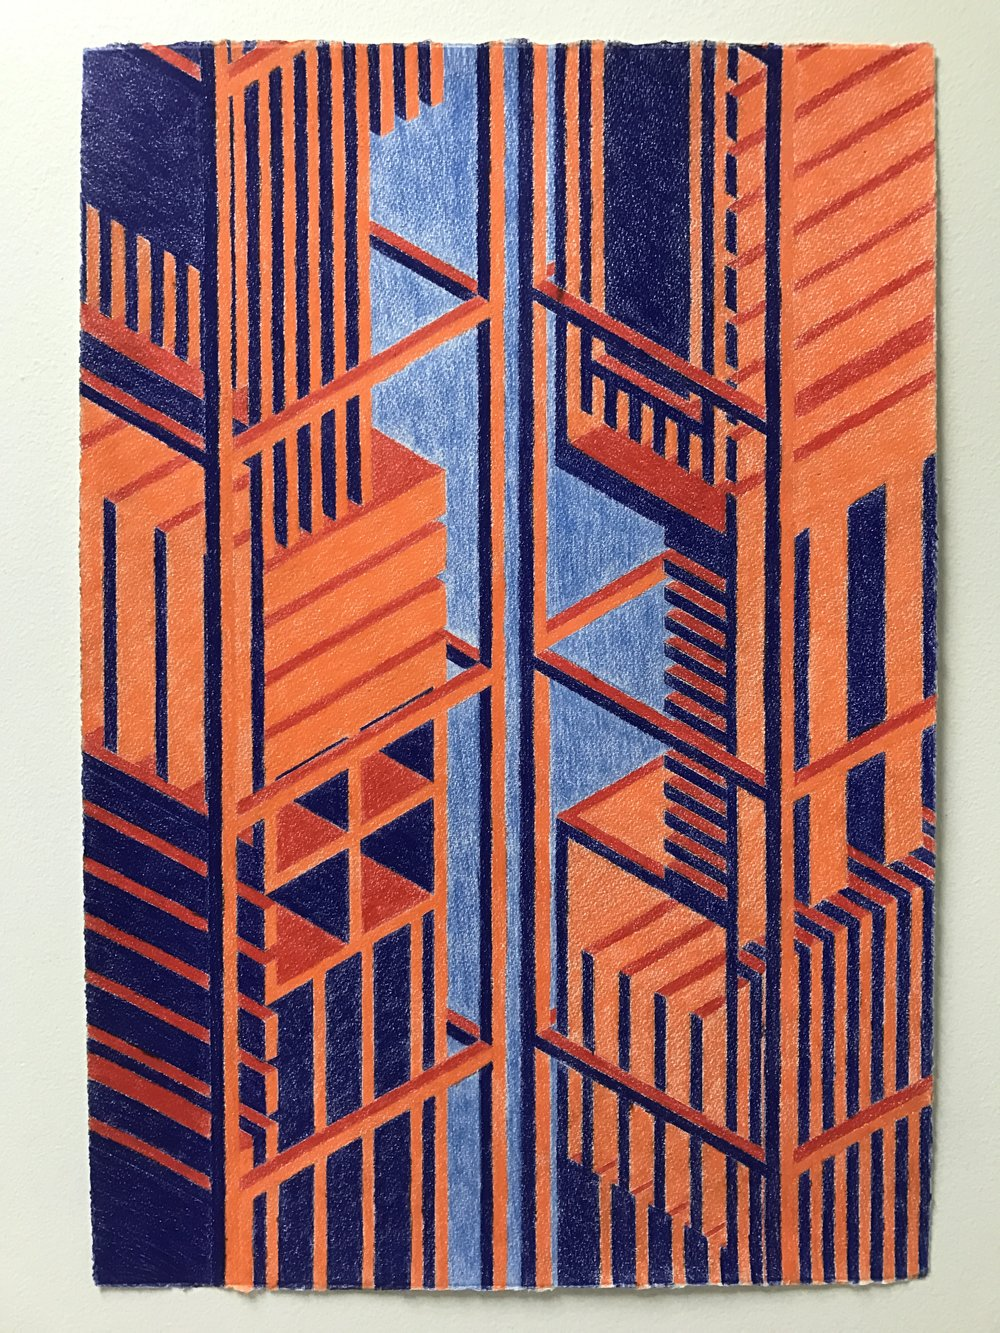 Tower (unctuous), 2015  colored pencil graphite on printmaking paper  22 x 15 inches